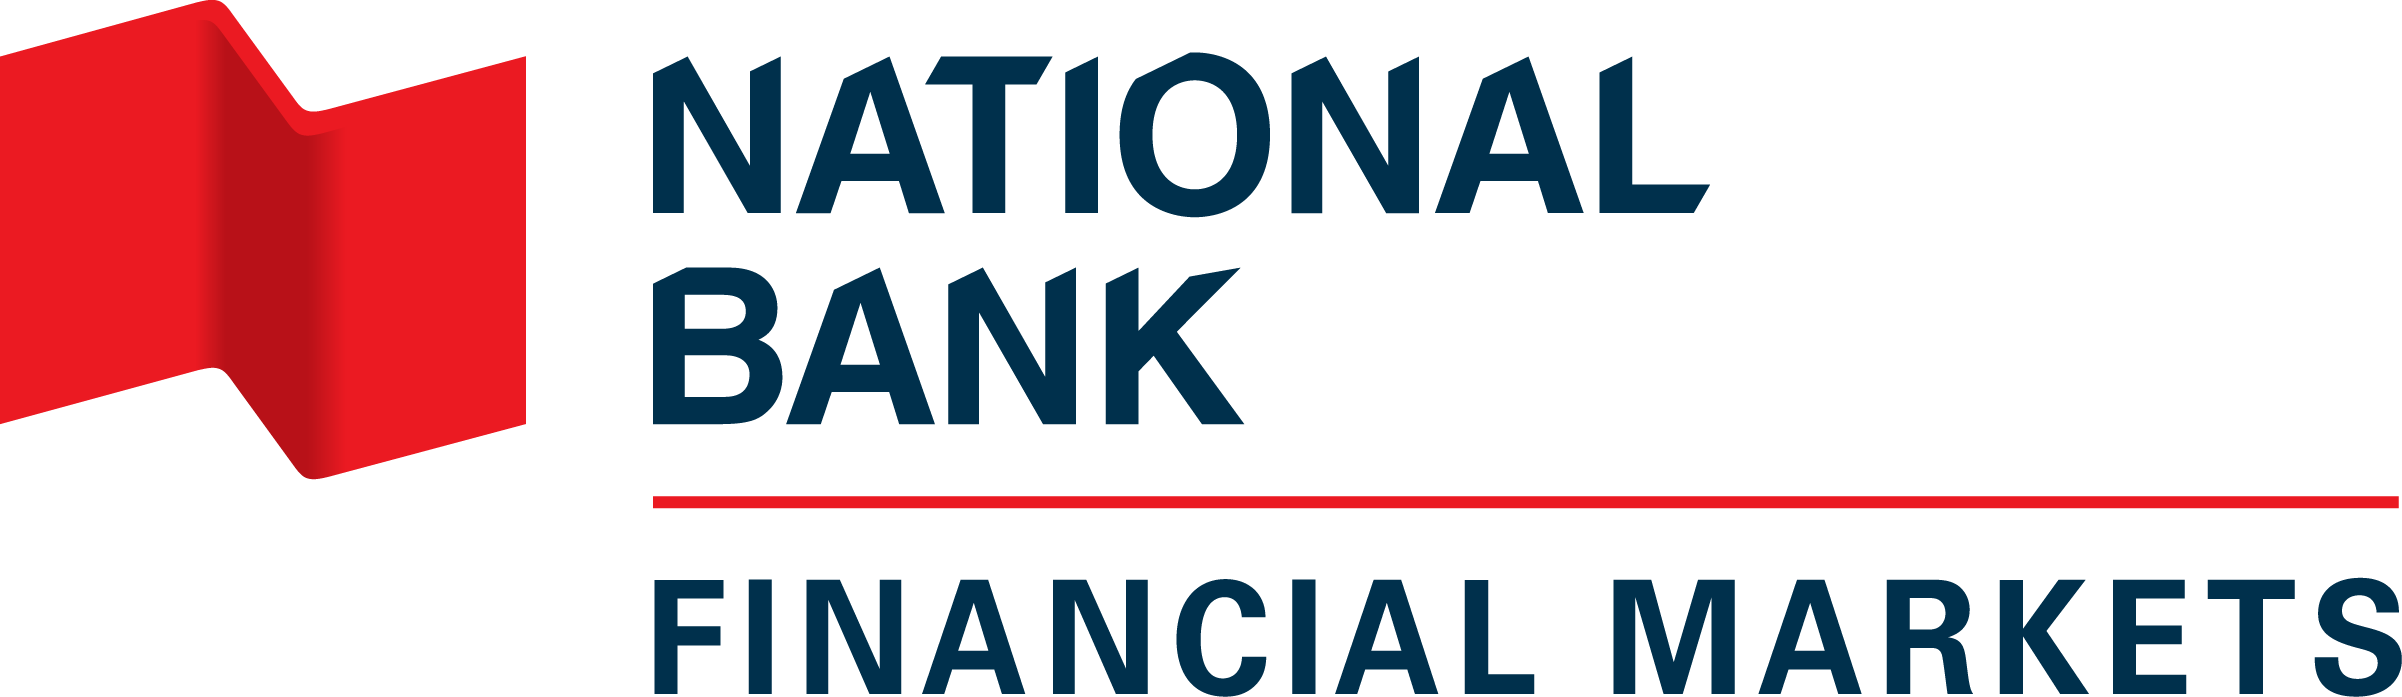 NBFM Logo with clear background